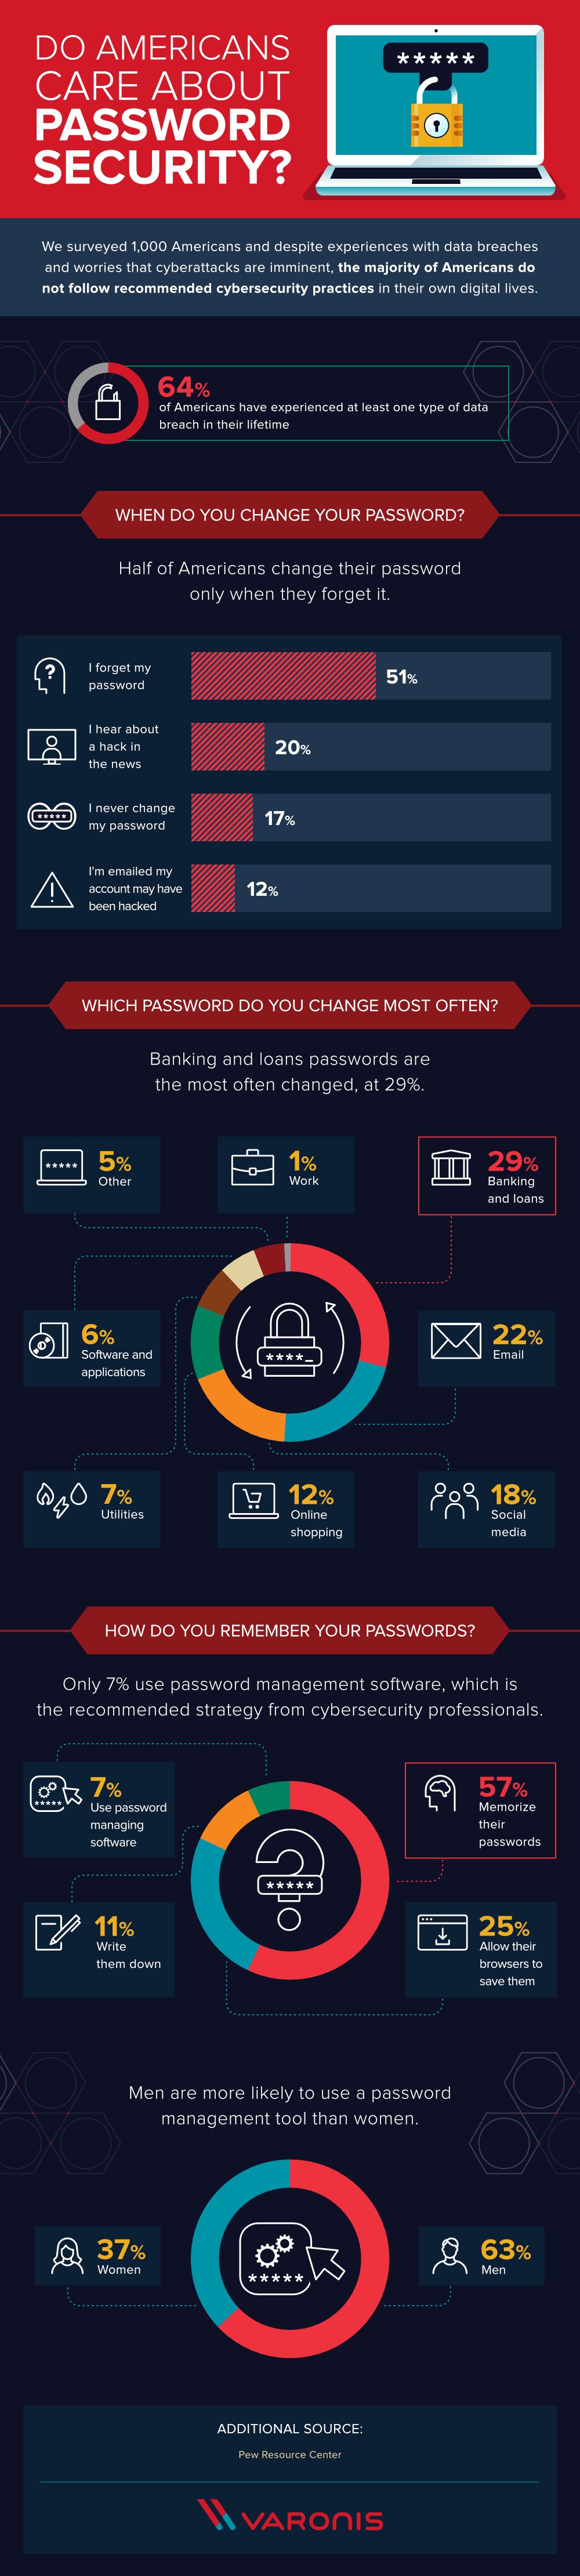 Do Americans Ever Change Their Passwords - #infographic